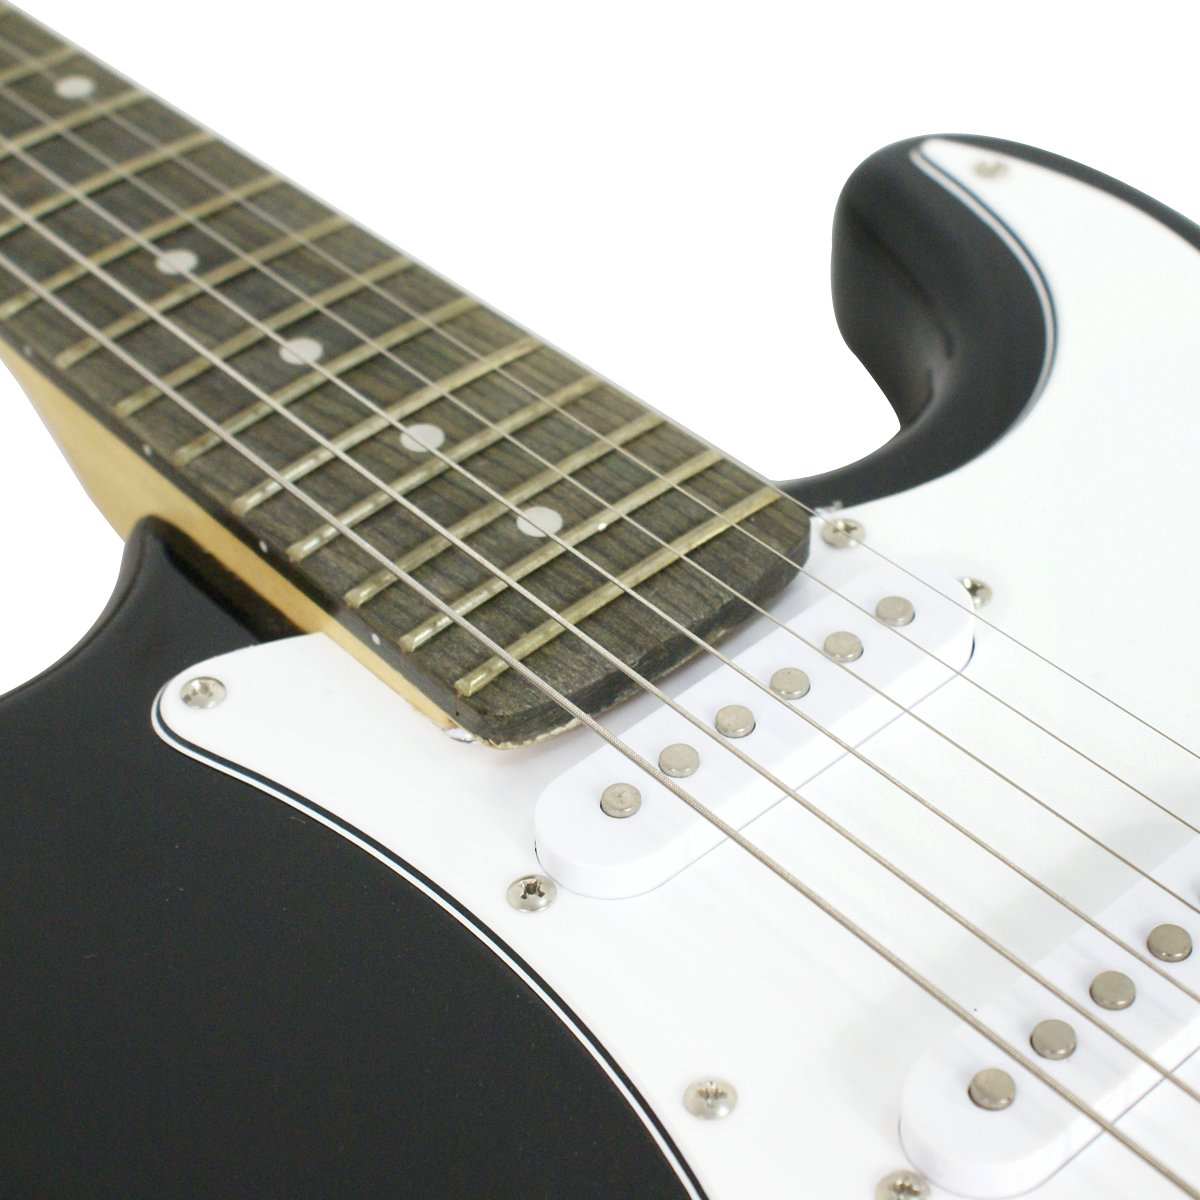 Close-up of the Black ZENY Electric Guitar